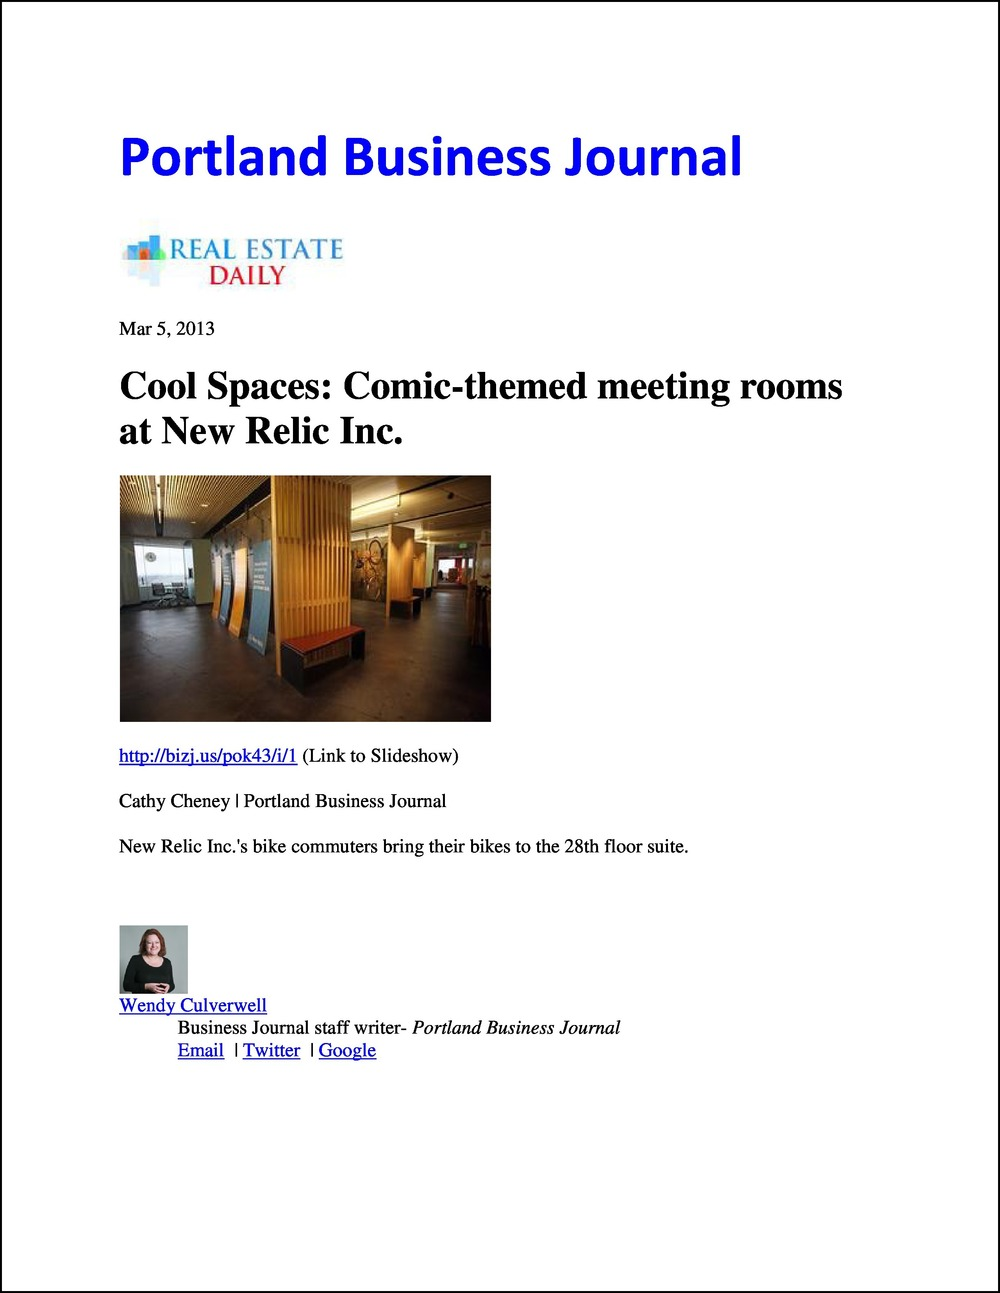 Portland Business Journal RE-Daily 03052013